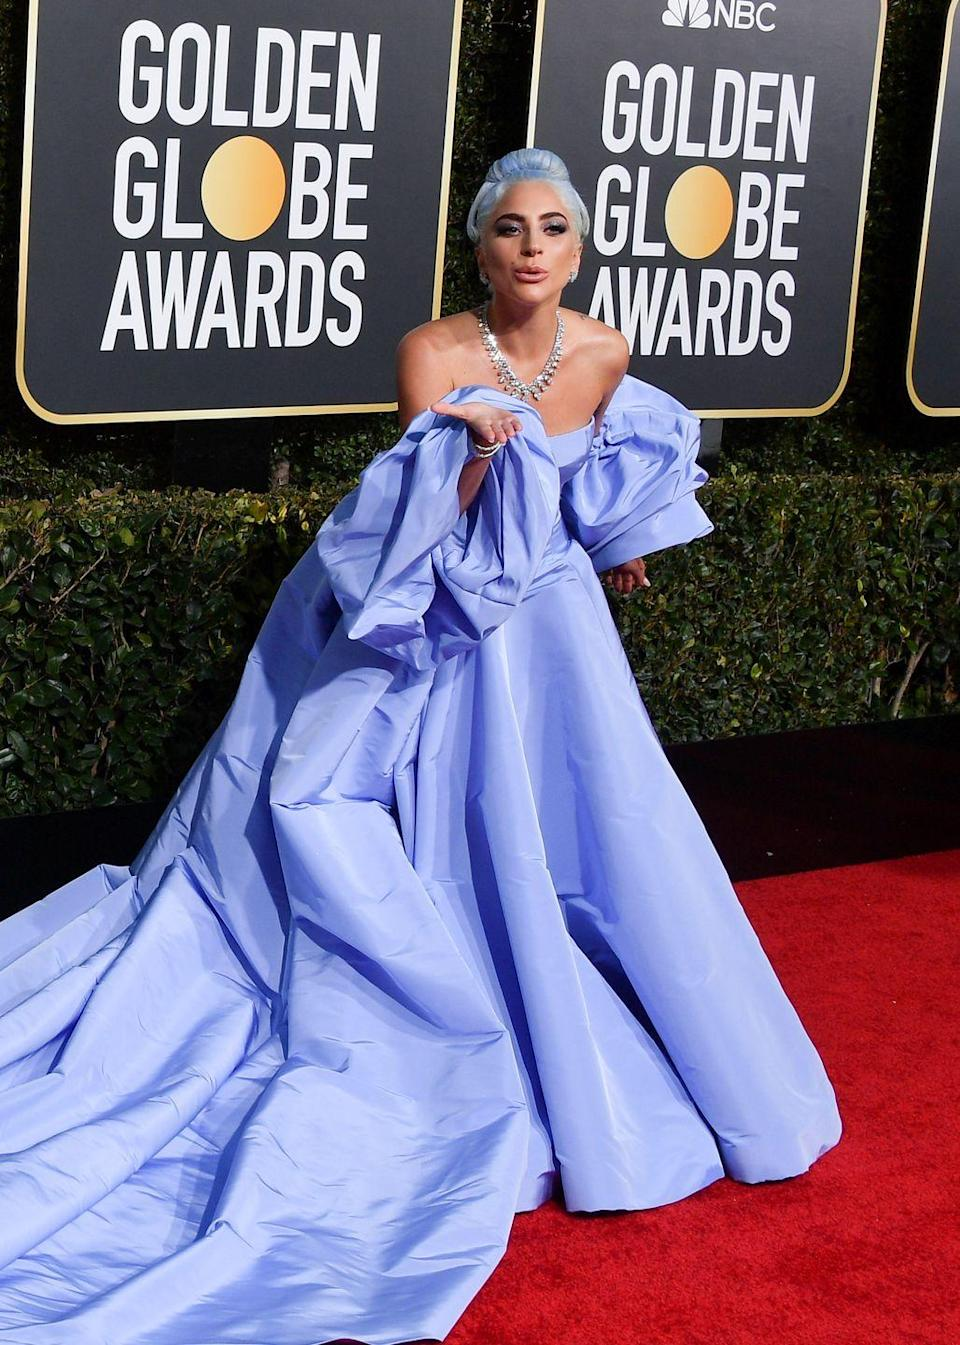 """<p>2019 was quite the year for Lady Gaga, which saw her scooping countless awards for A Star is Born. It also saw her upping her game fashion-wise in a series of high-octane gowns, culminating in her <a href=""""https://www.harpersbazaar.com/uk/fashion/fashion-news/a27386074/lady-gaga-strip-tease-met-gala/"""" rel=""""nofollow noopener"""" target=""""_blank"""" data-ylk=""""slk:striptease entrance at the Met Gala."""" class=""""link rapid-noclick-resp"""">striptease entrance at the Met Gala.</a> However, her red carpet highlight was this sky-blue Valentino couture dress that she wore to the Golden Globes. Gaga's gown<a href=""""https://www.harpersbazaar.com/uk/fashion/fashion-news/a25771495/lady-gaga-judy-garland-dress-tribute-accident/"""" rel=""""nofollow noopener"""" target=""""_blank"""" data-ylk=""""slk:resembled a dress that Judy Garland"""" class=""""link rapid-noclick-resp""""> resembled a dress that Judy Garland</a> wore in the original 1954 version of A Star is Born - the role for which Gaga was nominated. She later said that the comparison was actually a happy accident, but admitted that """"it looks an awful lot like it, doesn't it?""""</p>"""